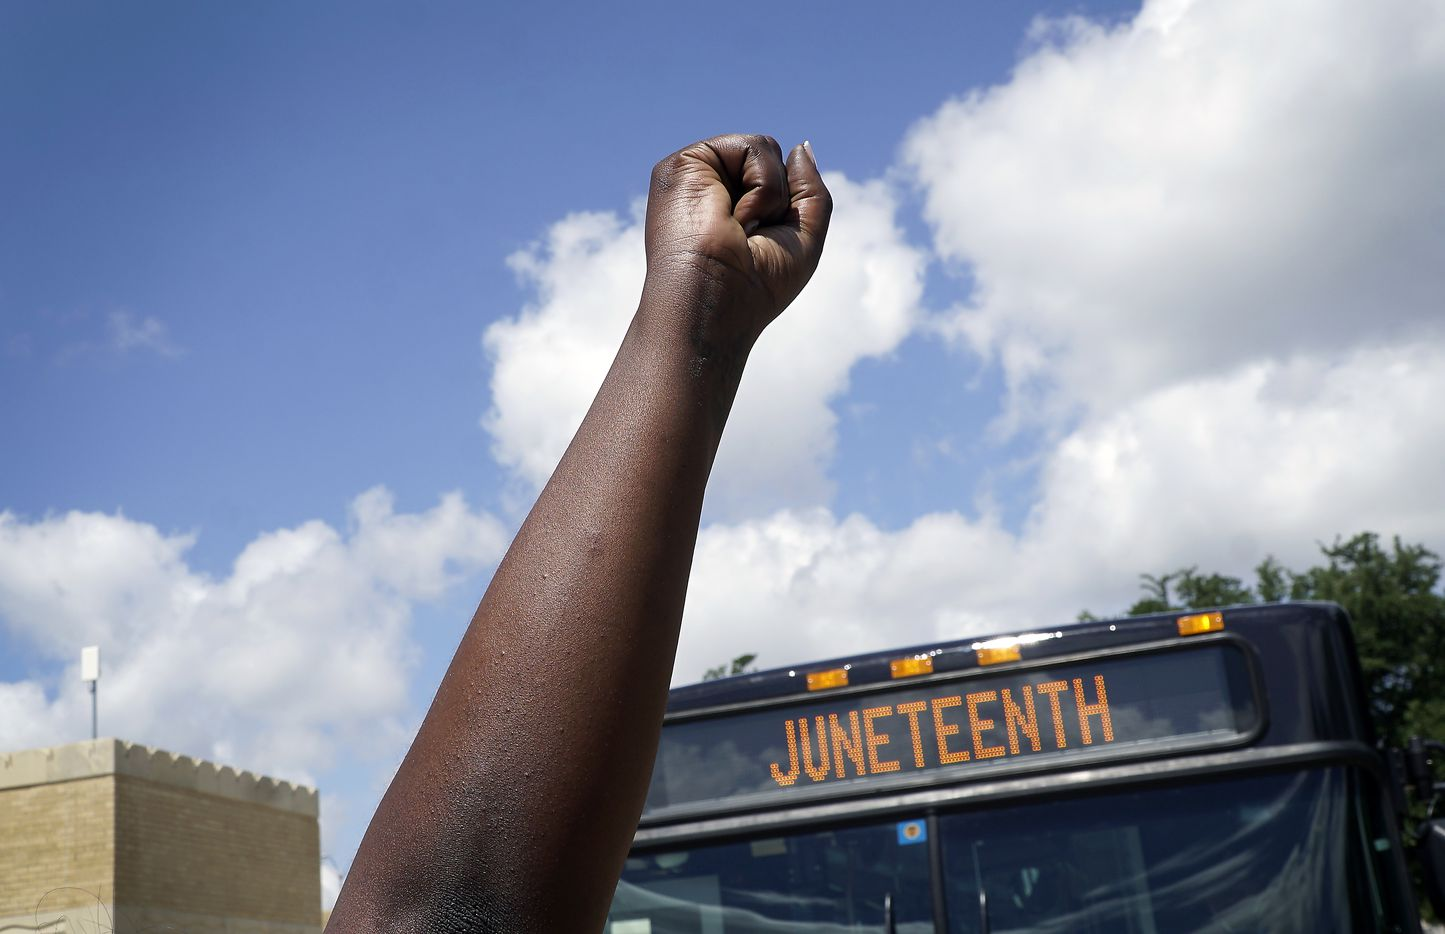 Hundreds of people participated in a parade in Fort Worth as 93-year old activist Opal Lee marched 2.5 miles as part of her campaign to make Juneteenth a national holiday on Friday, June 19, 2020. The march started at the convention center  downtown and ended at Will Rogers Coliseum.